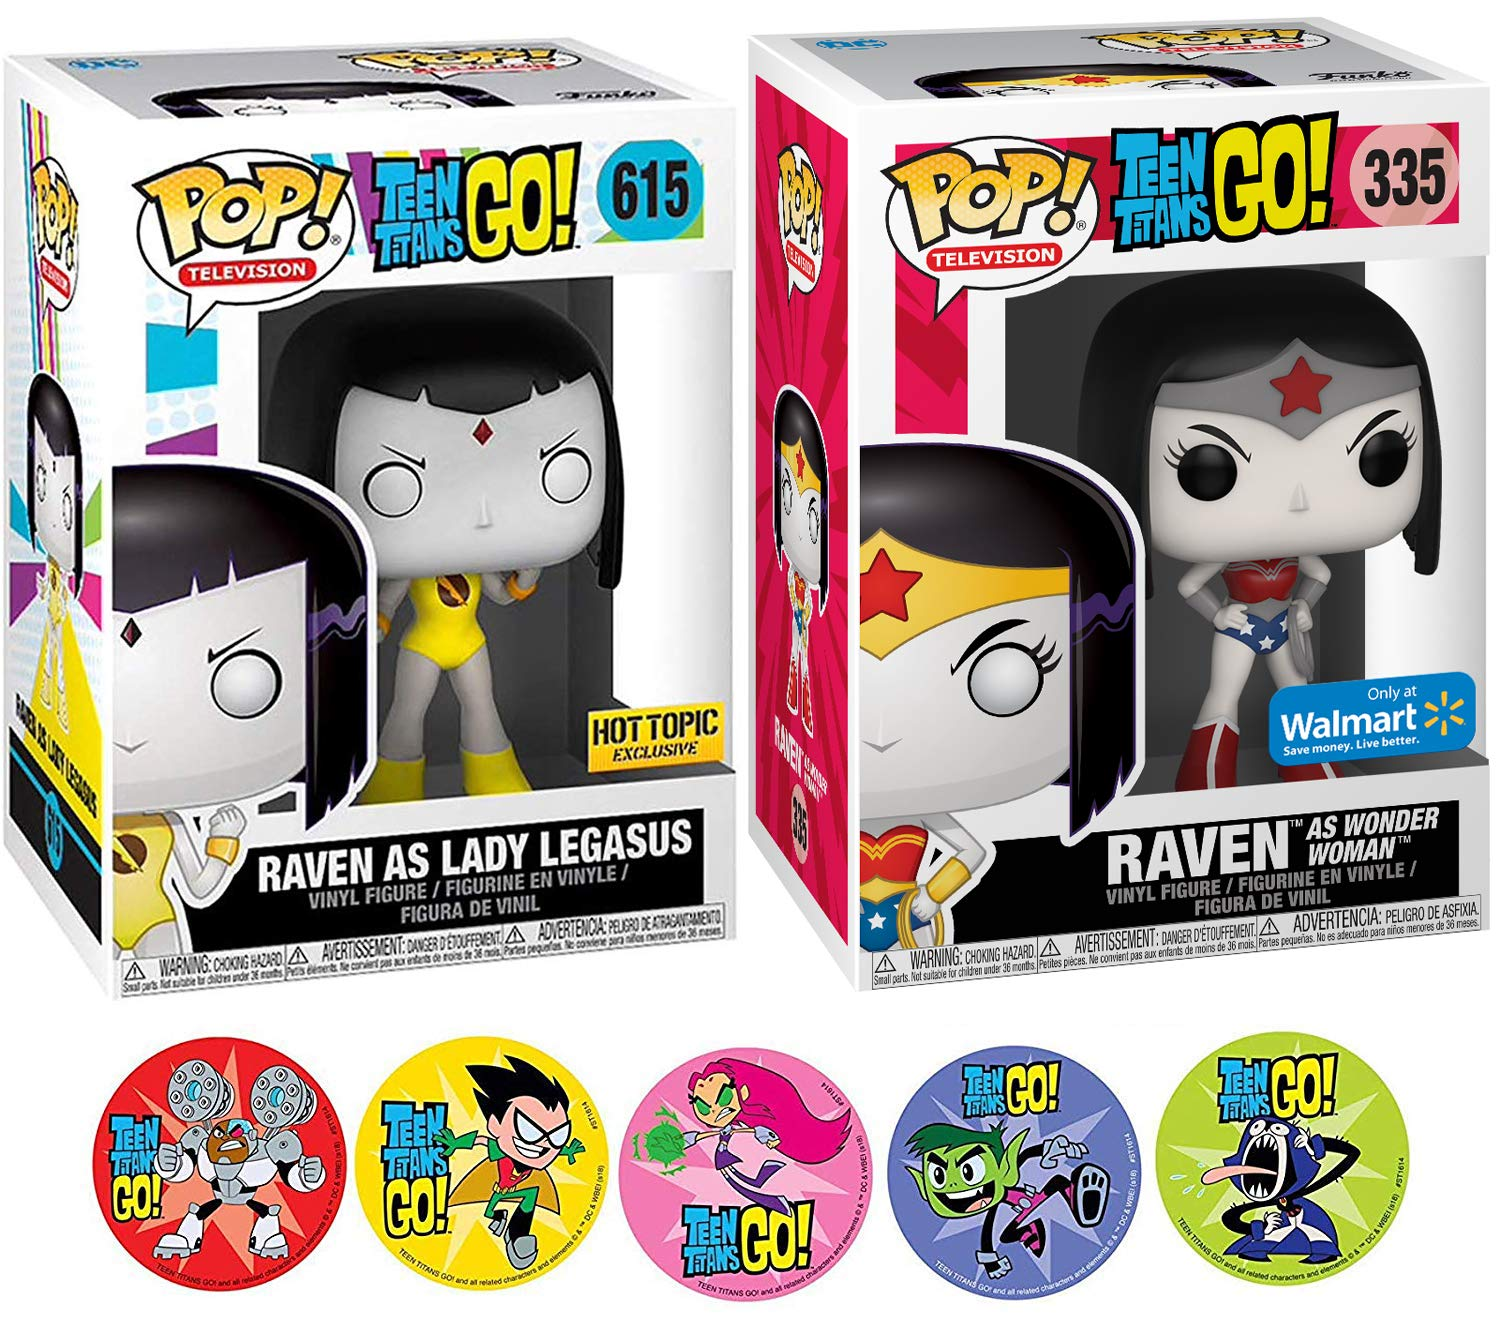 Robin Beast Boy /& Cyborg 3 Item Bundle AYB Products Starfire Funko Raven As Character Teen Titans Wonder Woman Figure /& Lady Pegasus Hero Pack Adventure Cartoon Toy Super DC Pop Exclusive with Action Stickers